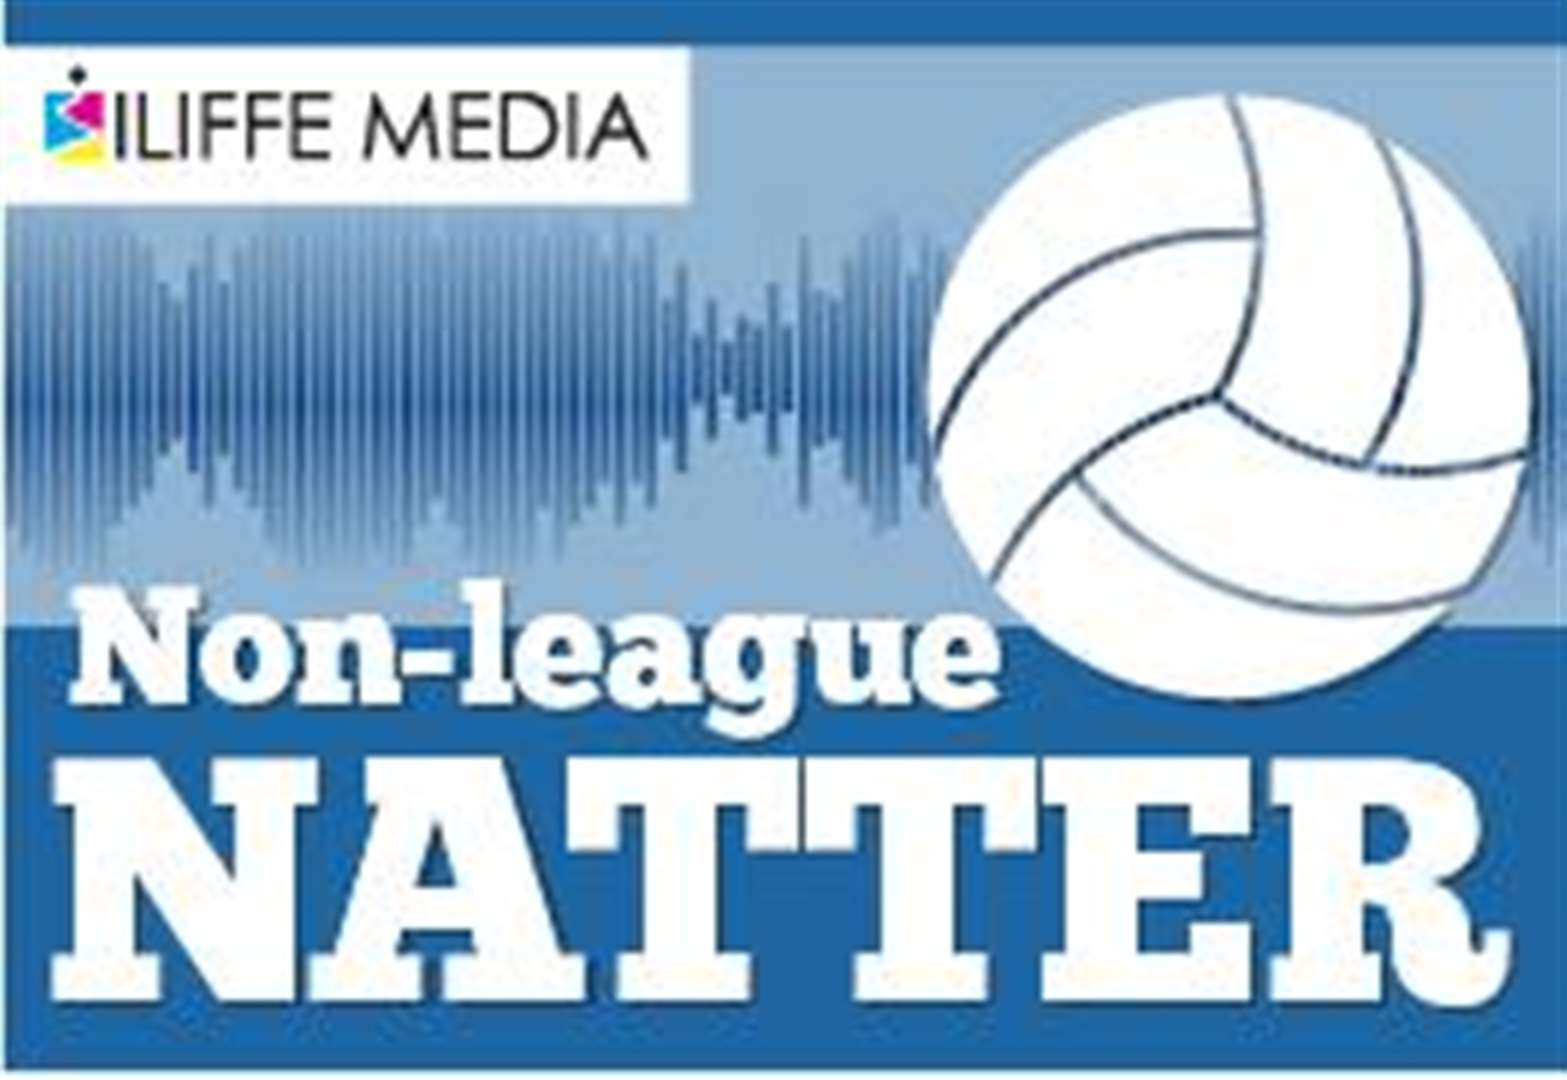 Non-League Natter Podcast: Ep 11